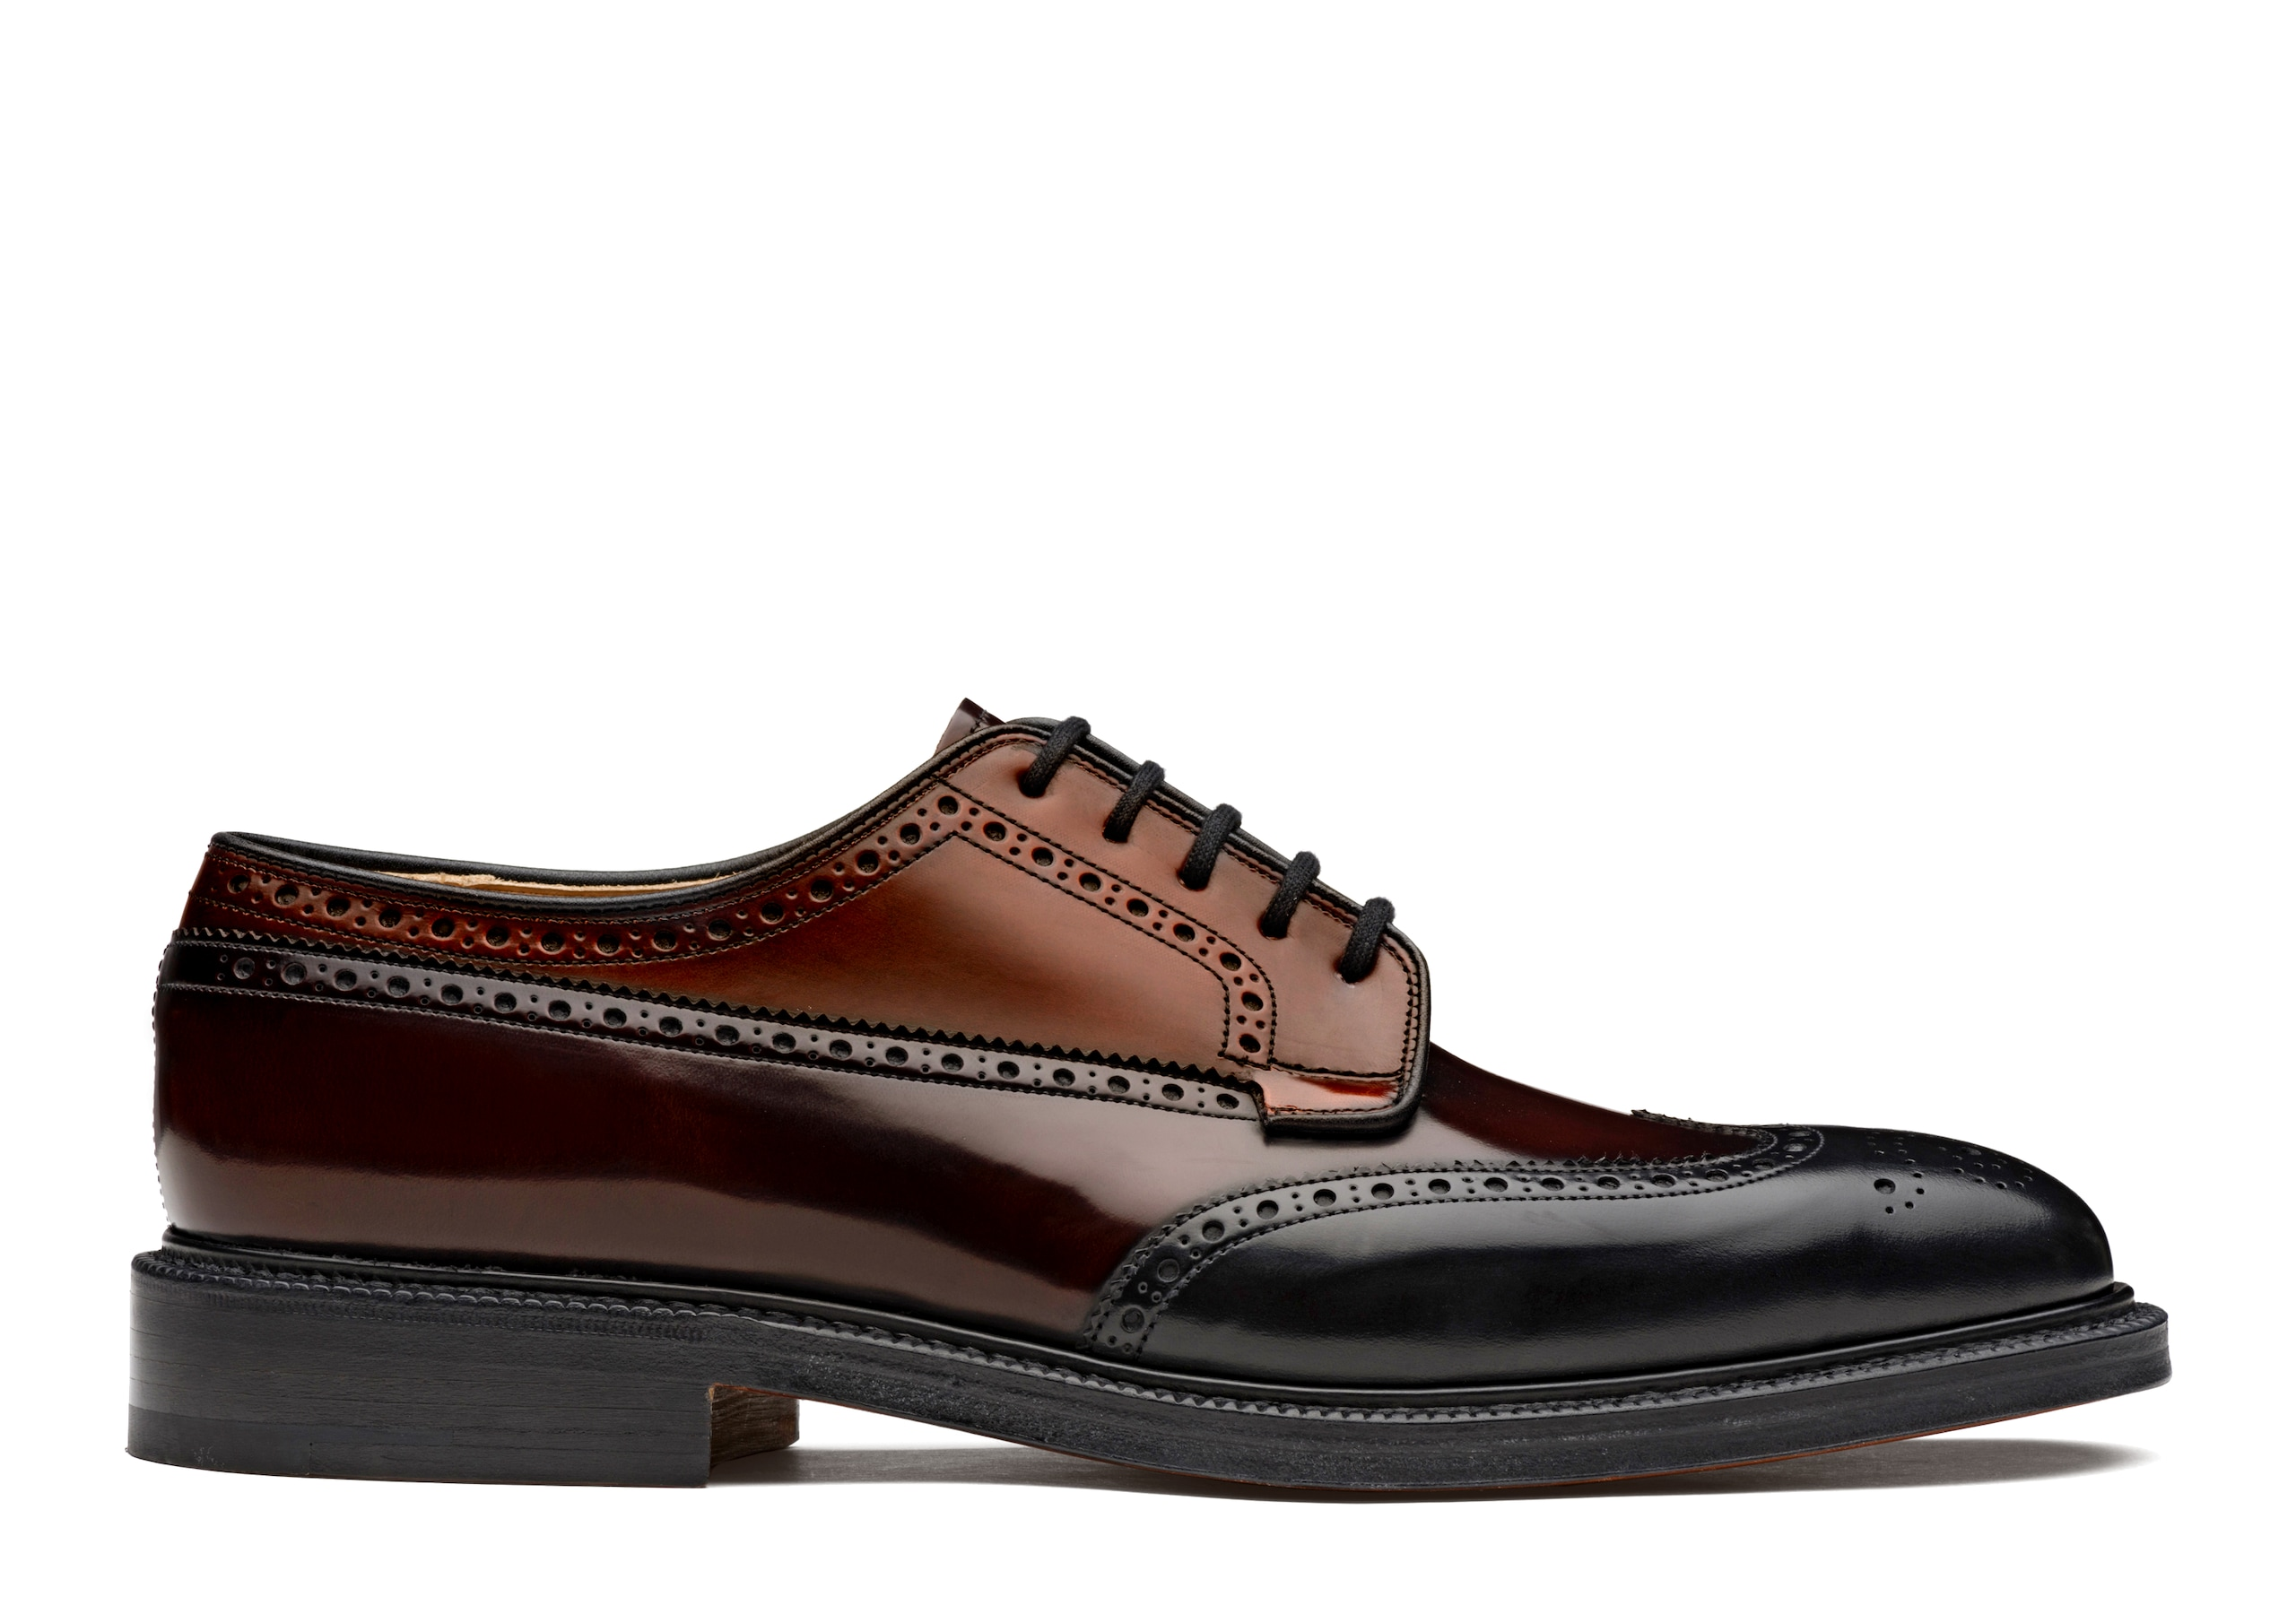 Grafton Church's Derby Brogue in Pelle di Vitello Spazzolato Tricolore Nero